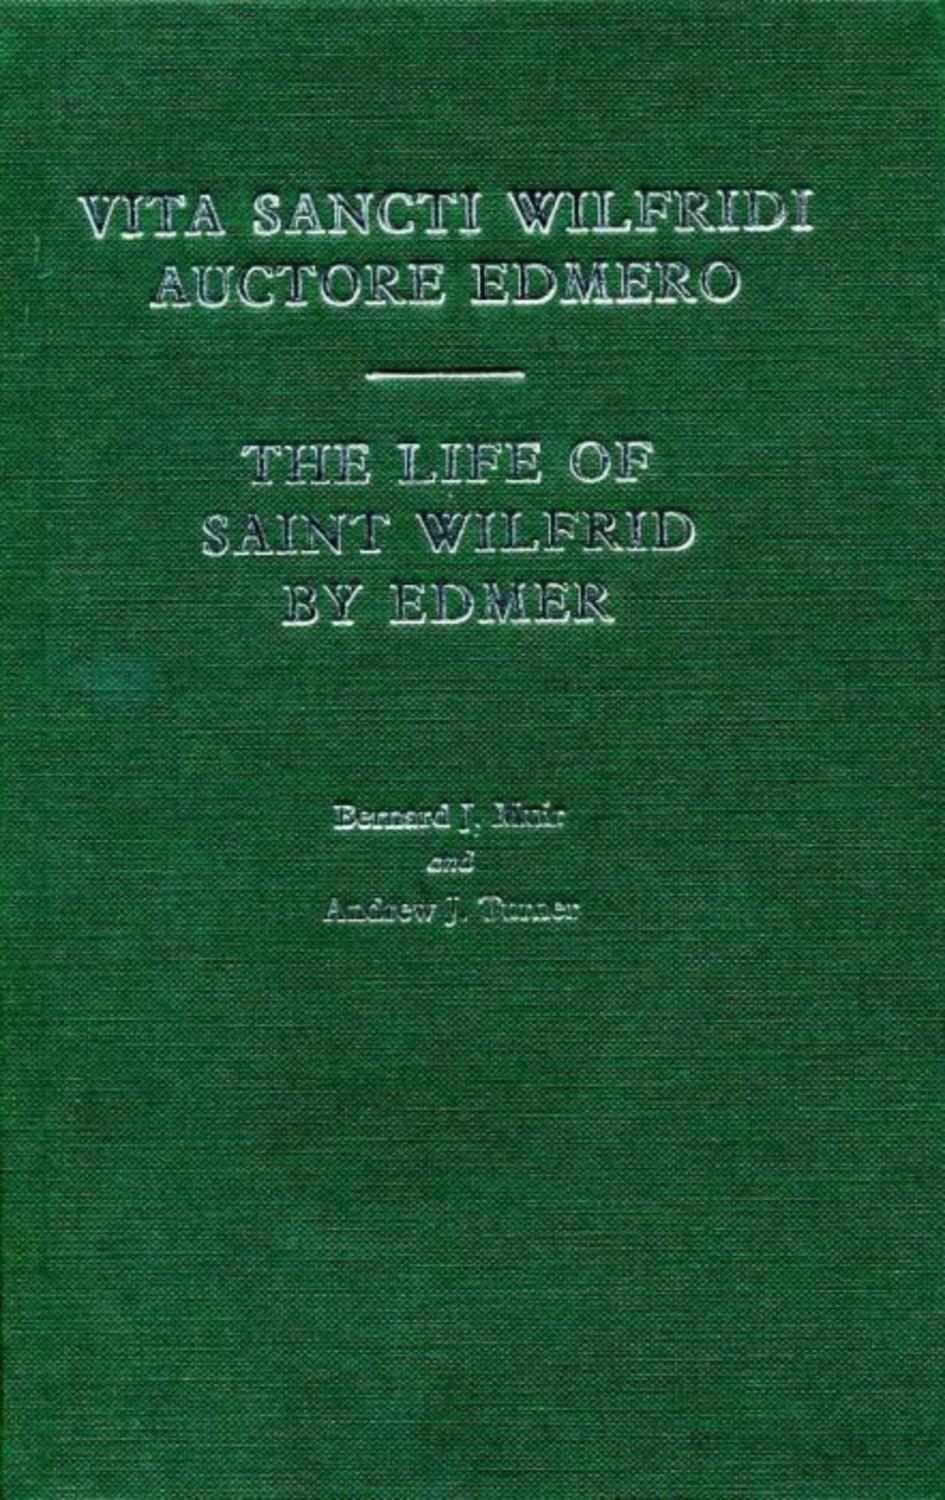 Life of Saint Wilfrid by Edmer